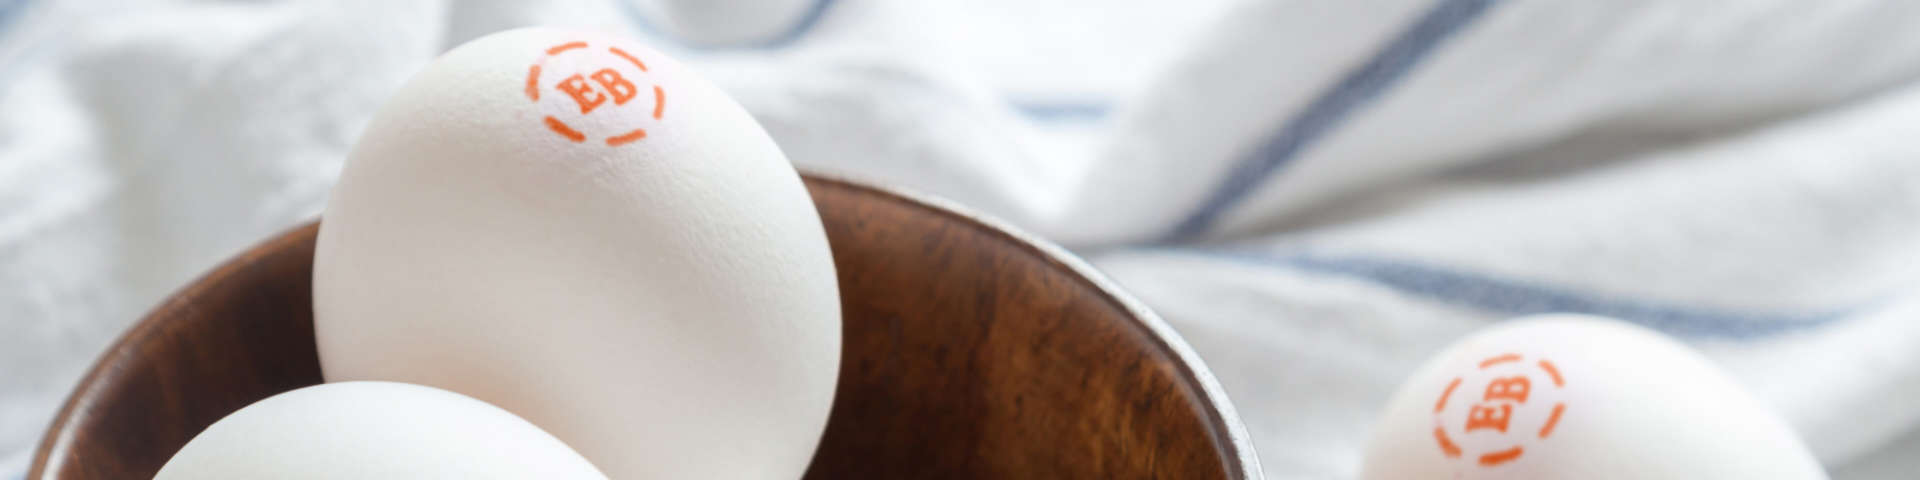 A basket of Eggland's Best Eggs